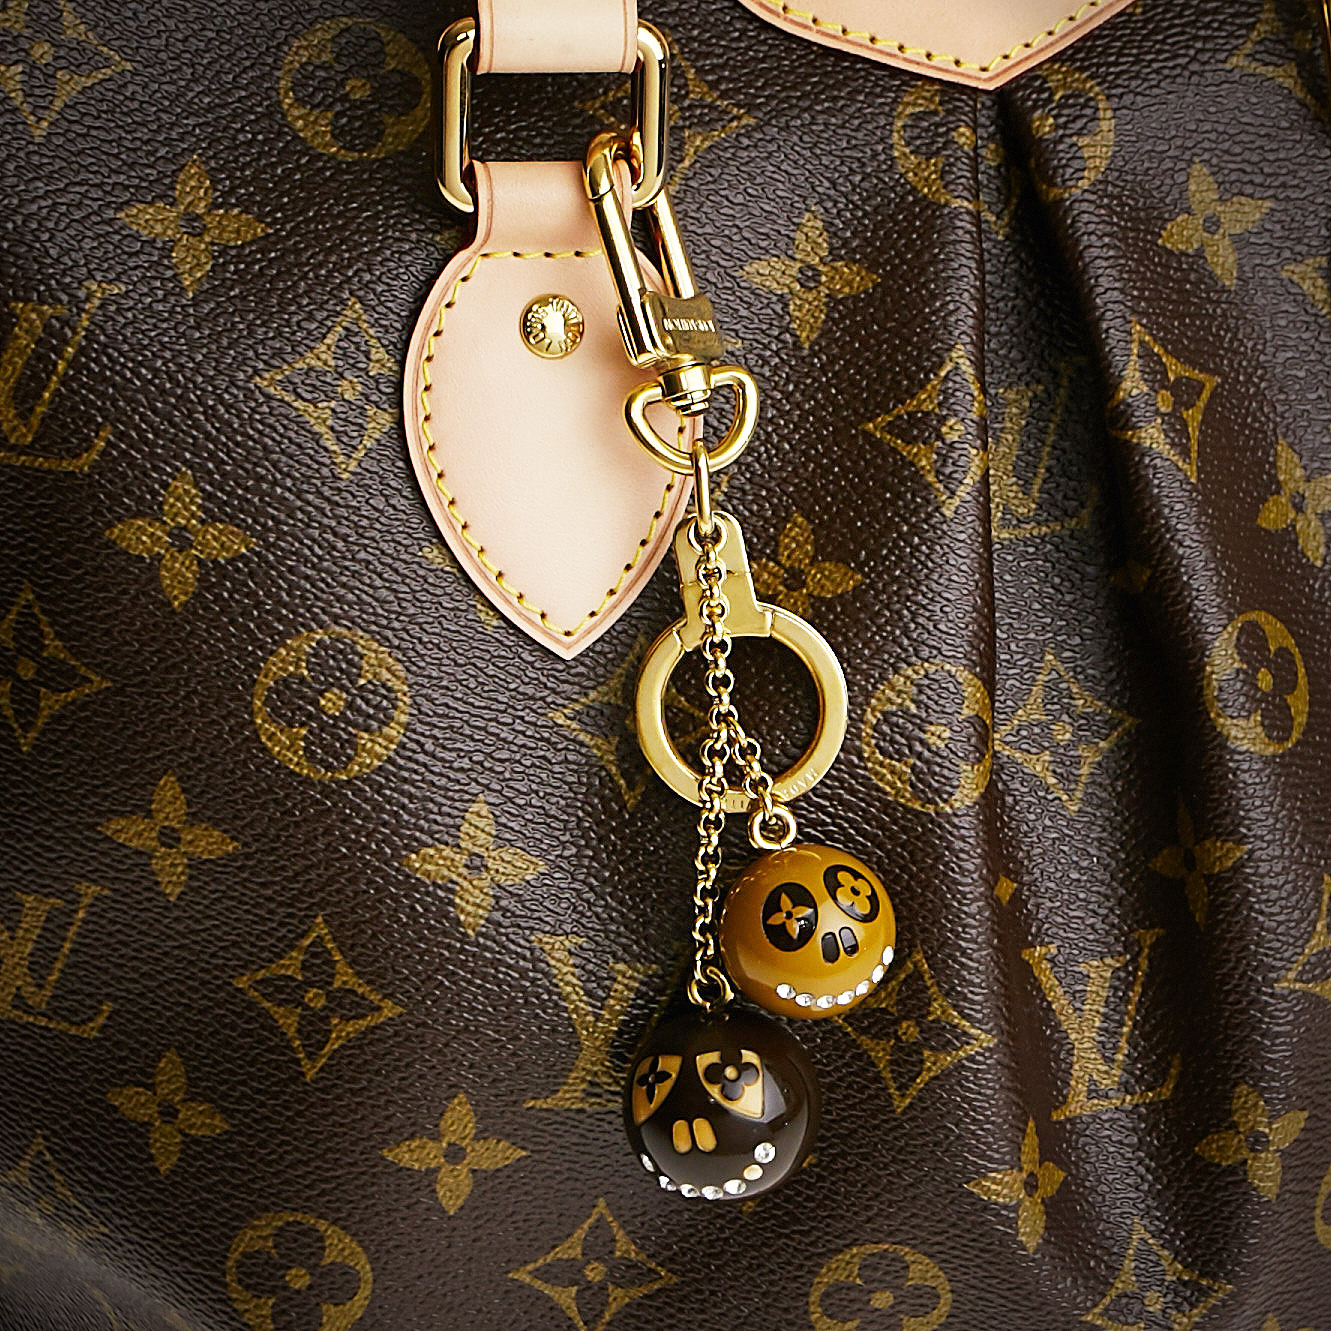 Louis Vuitton Jack and Lucie Skull Bag Charm | Yoogi's Closet Authenticated Pre-Owned Luxury yoogiscloset.com